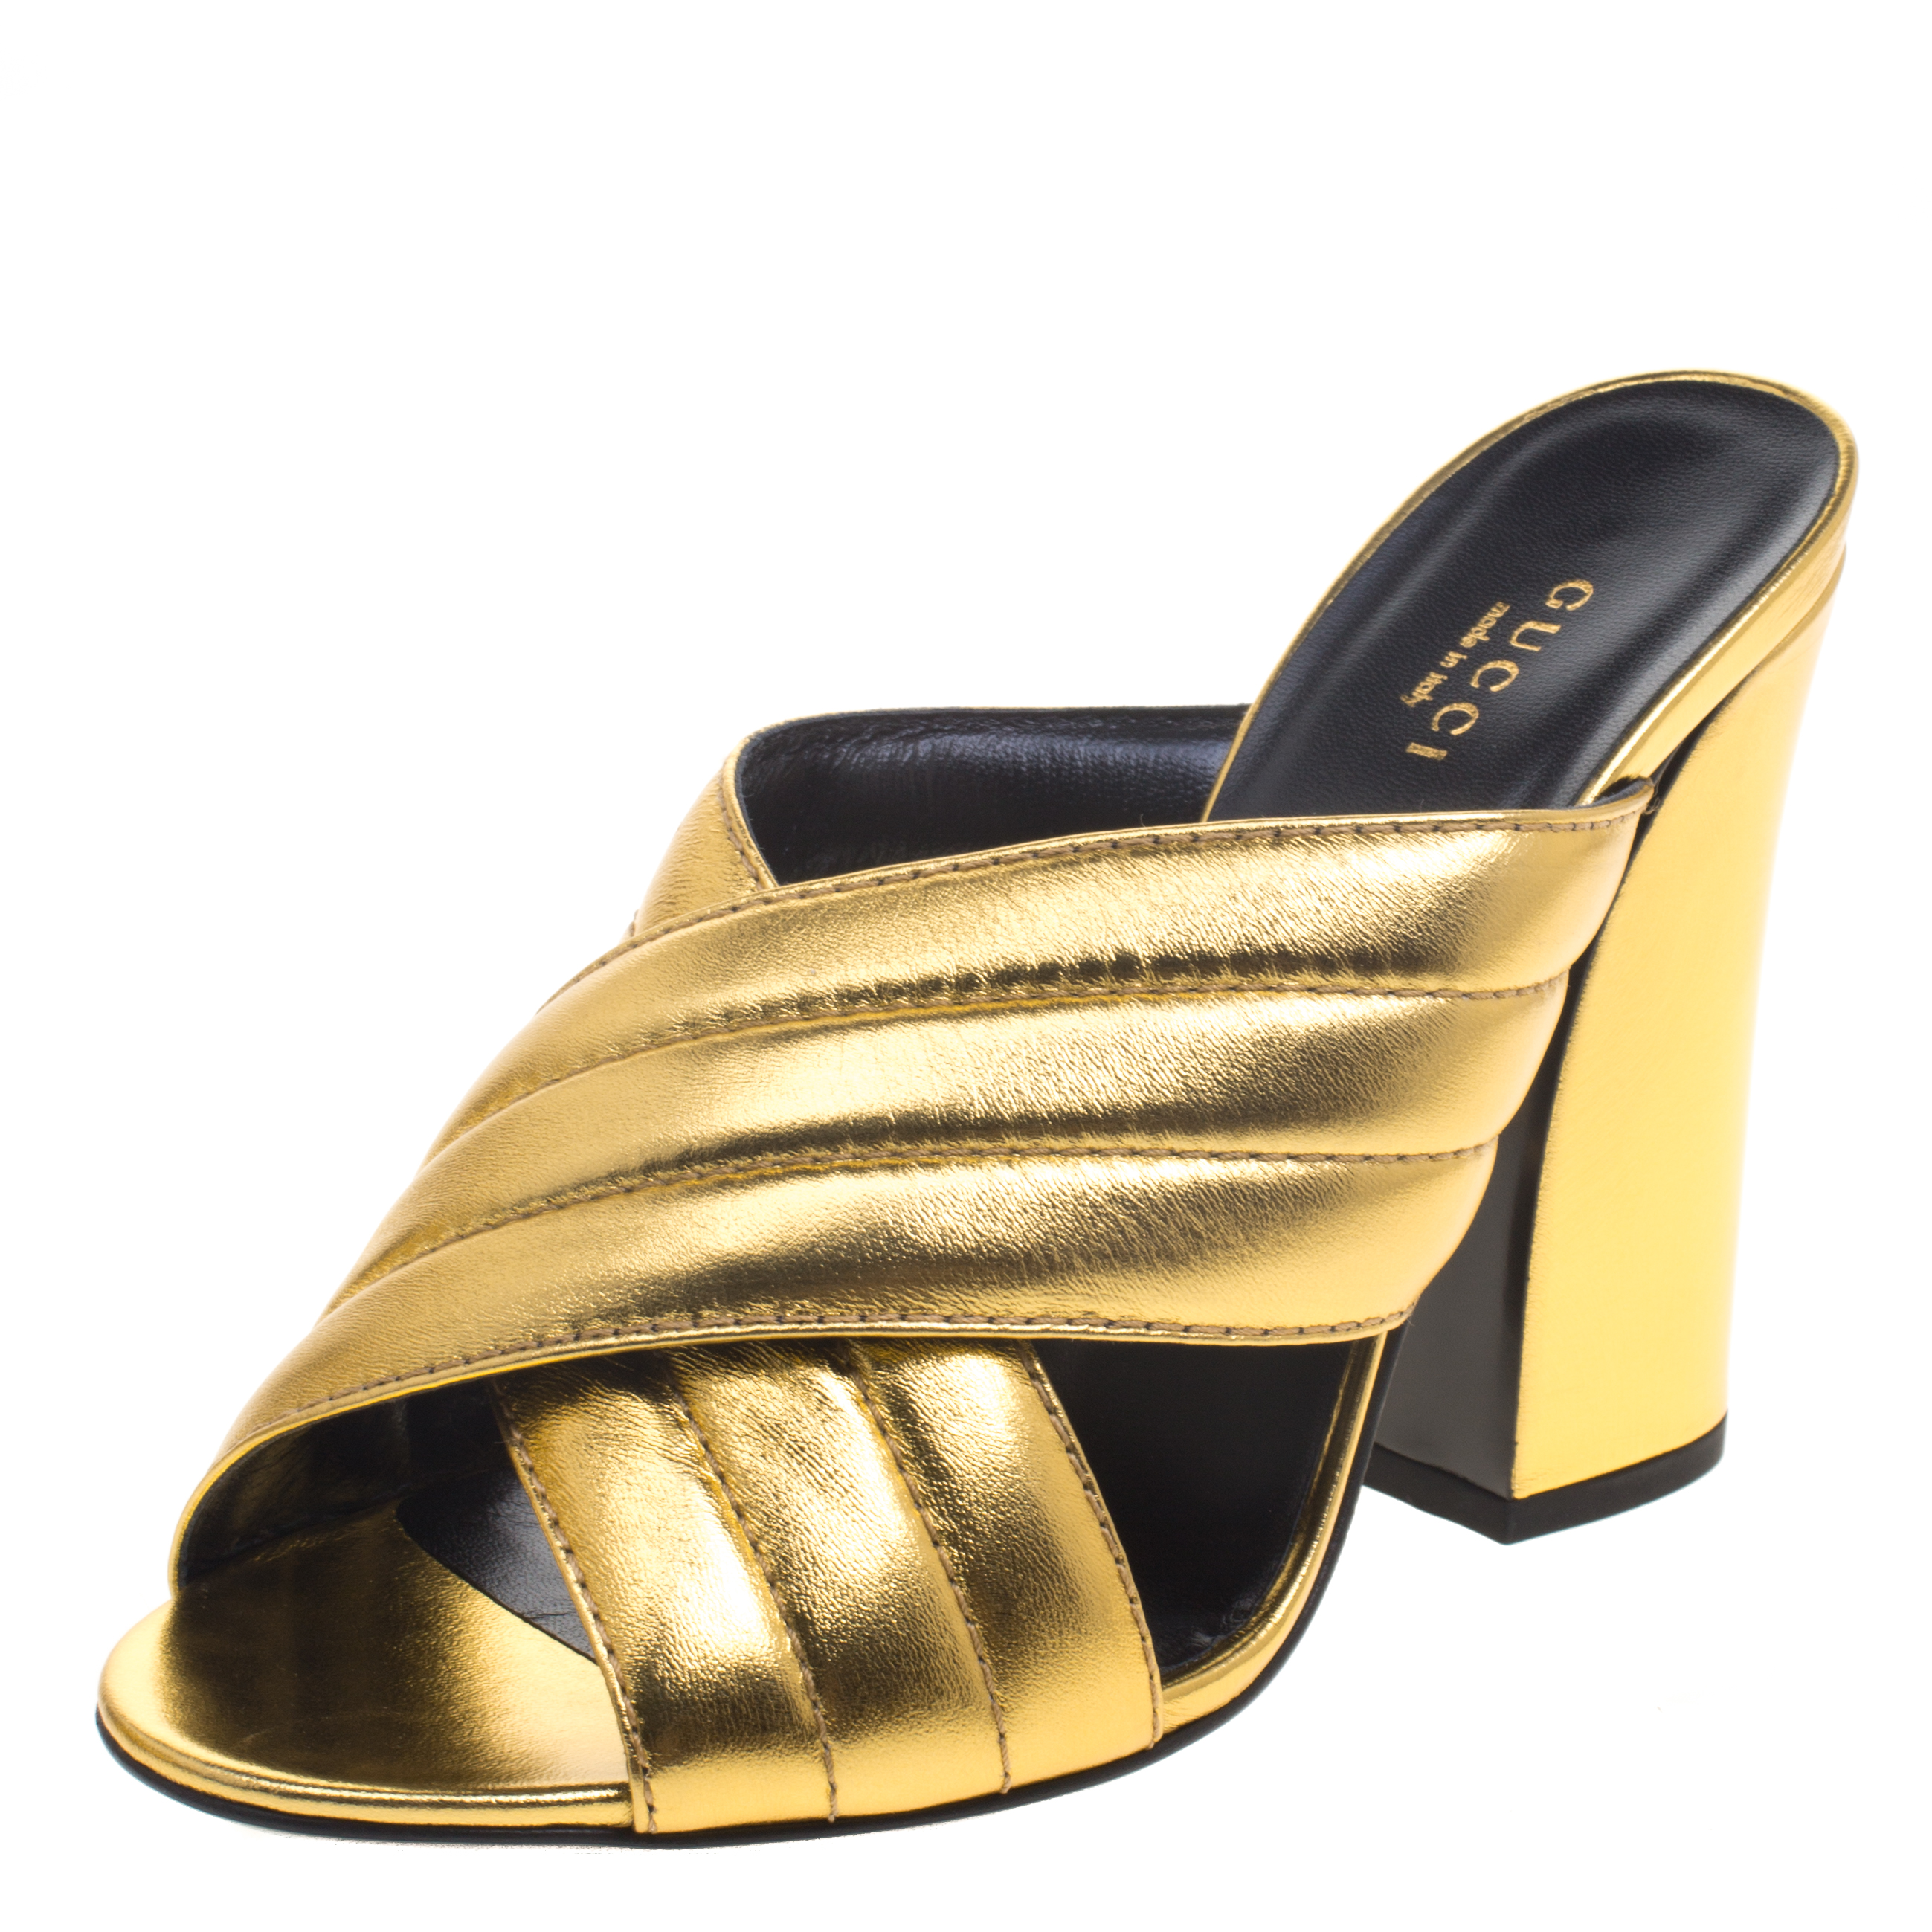 8207d5aa07e0 Buy Gucci Gold Metallic Leather Sylvia Crossover Mules Size 39.5 ...